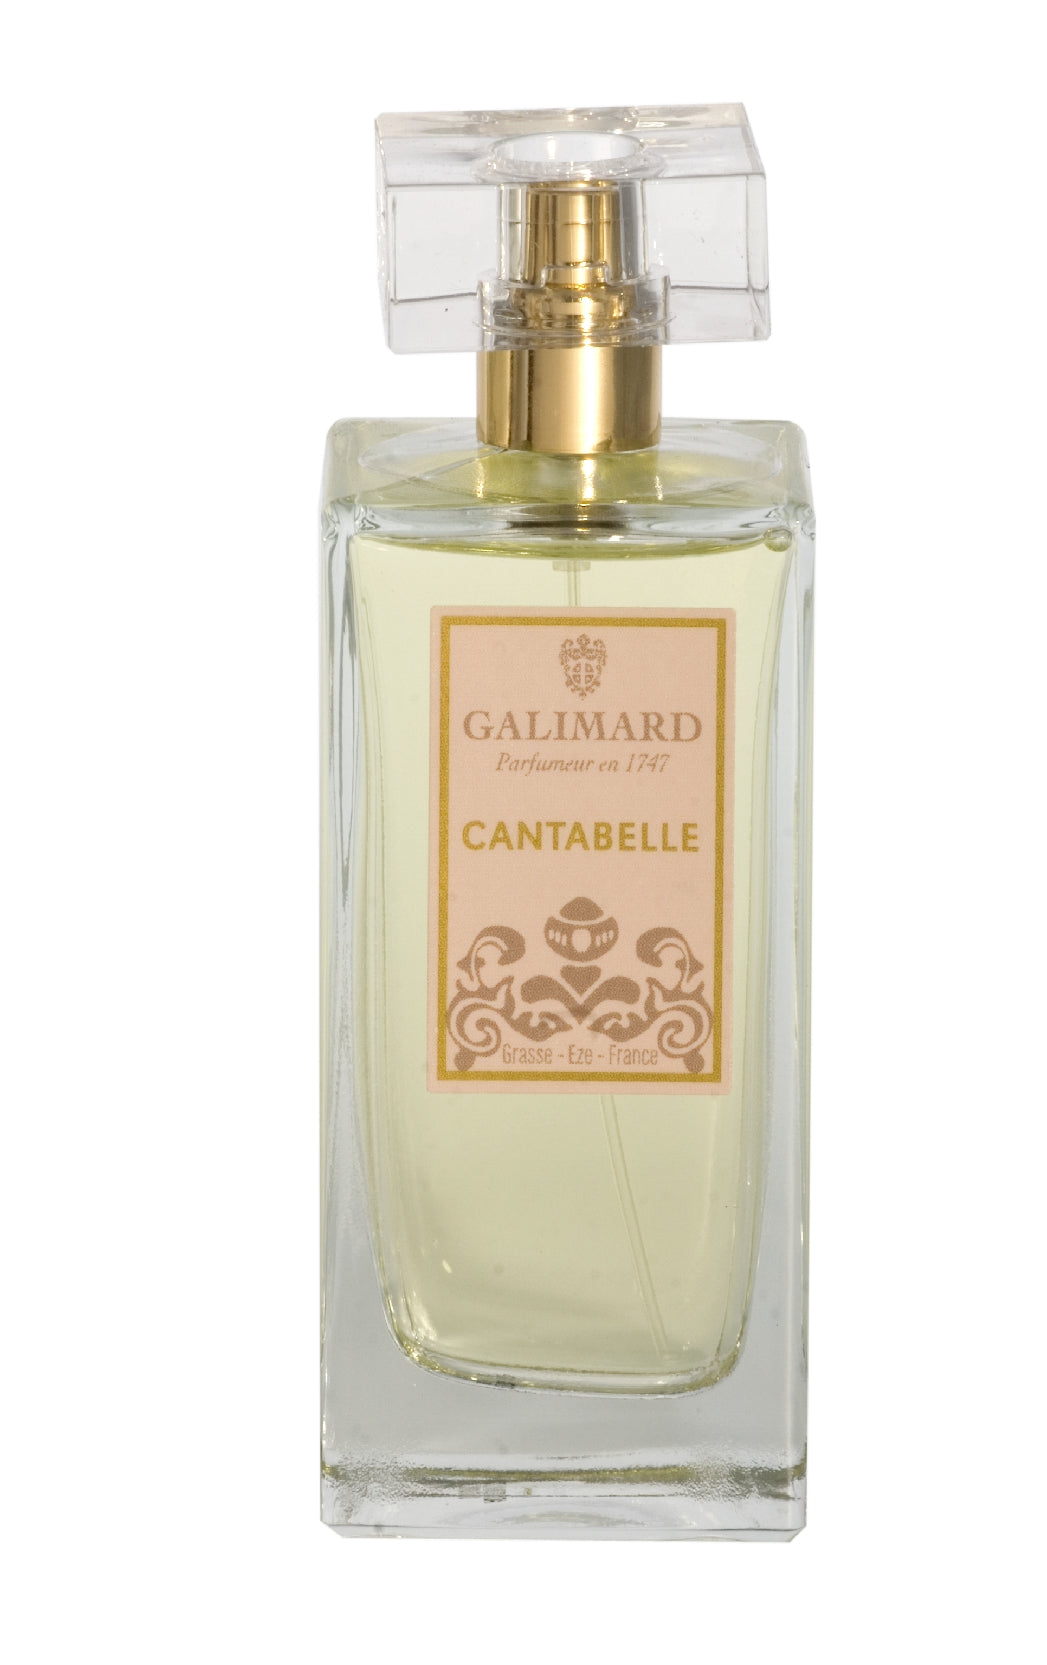 Galimard Cantabelle Pure Parfum 100ml